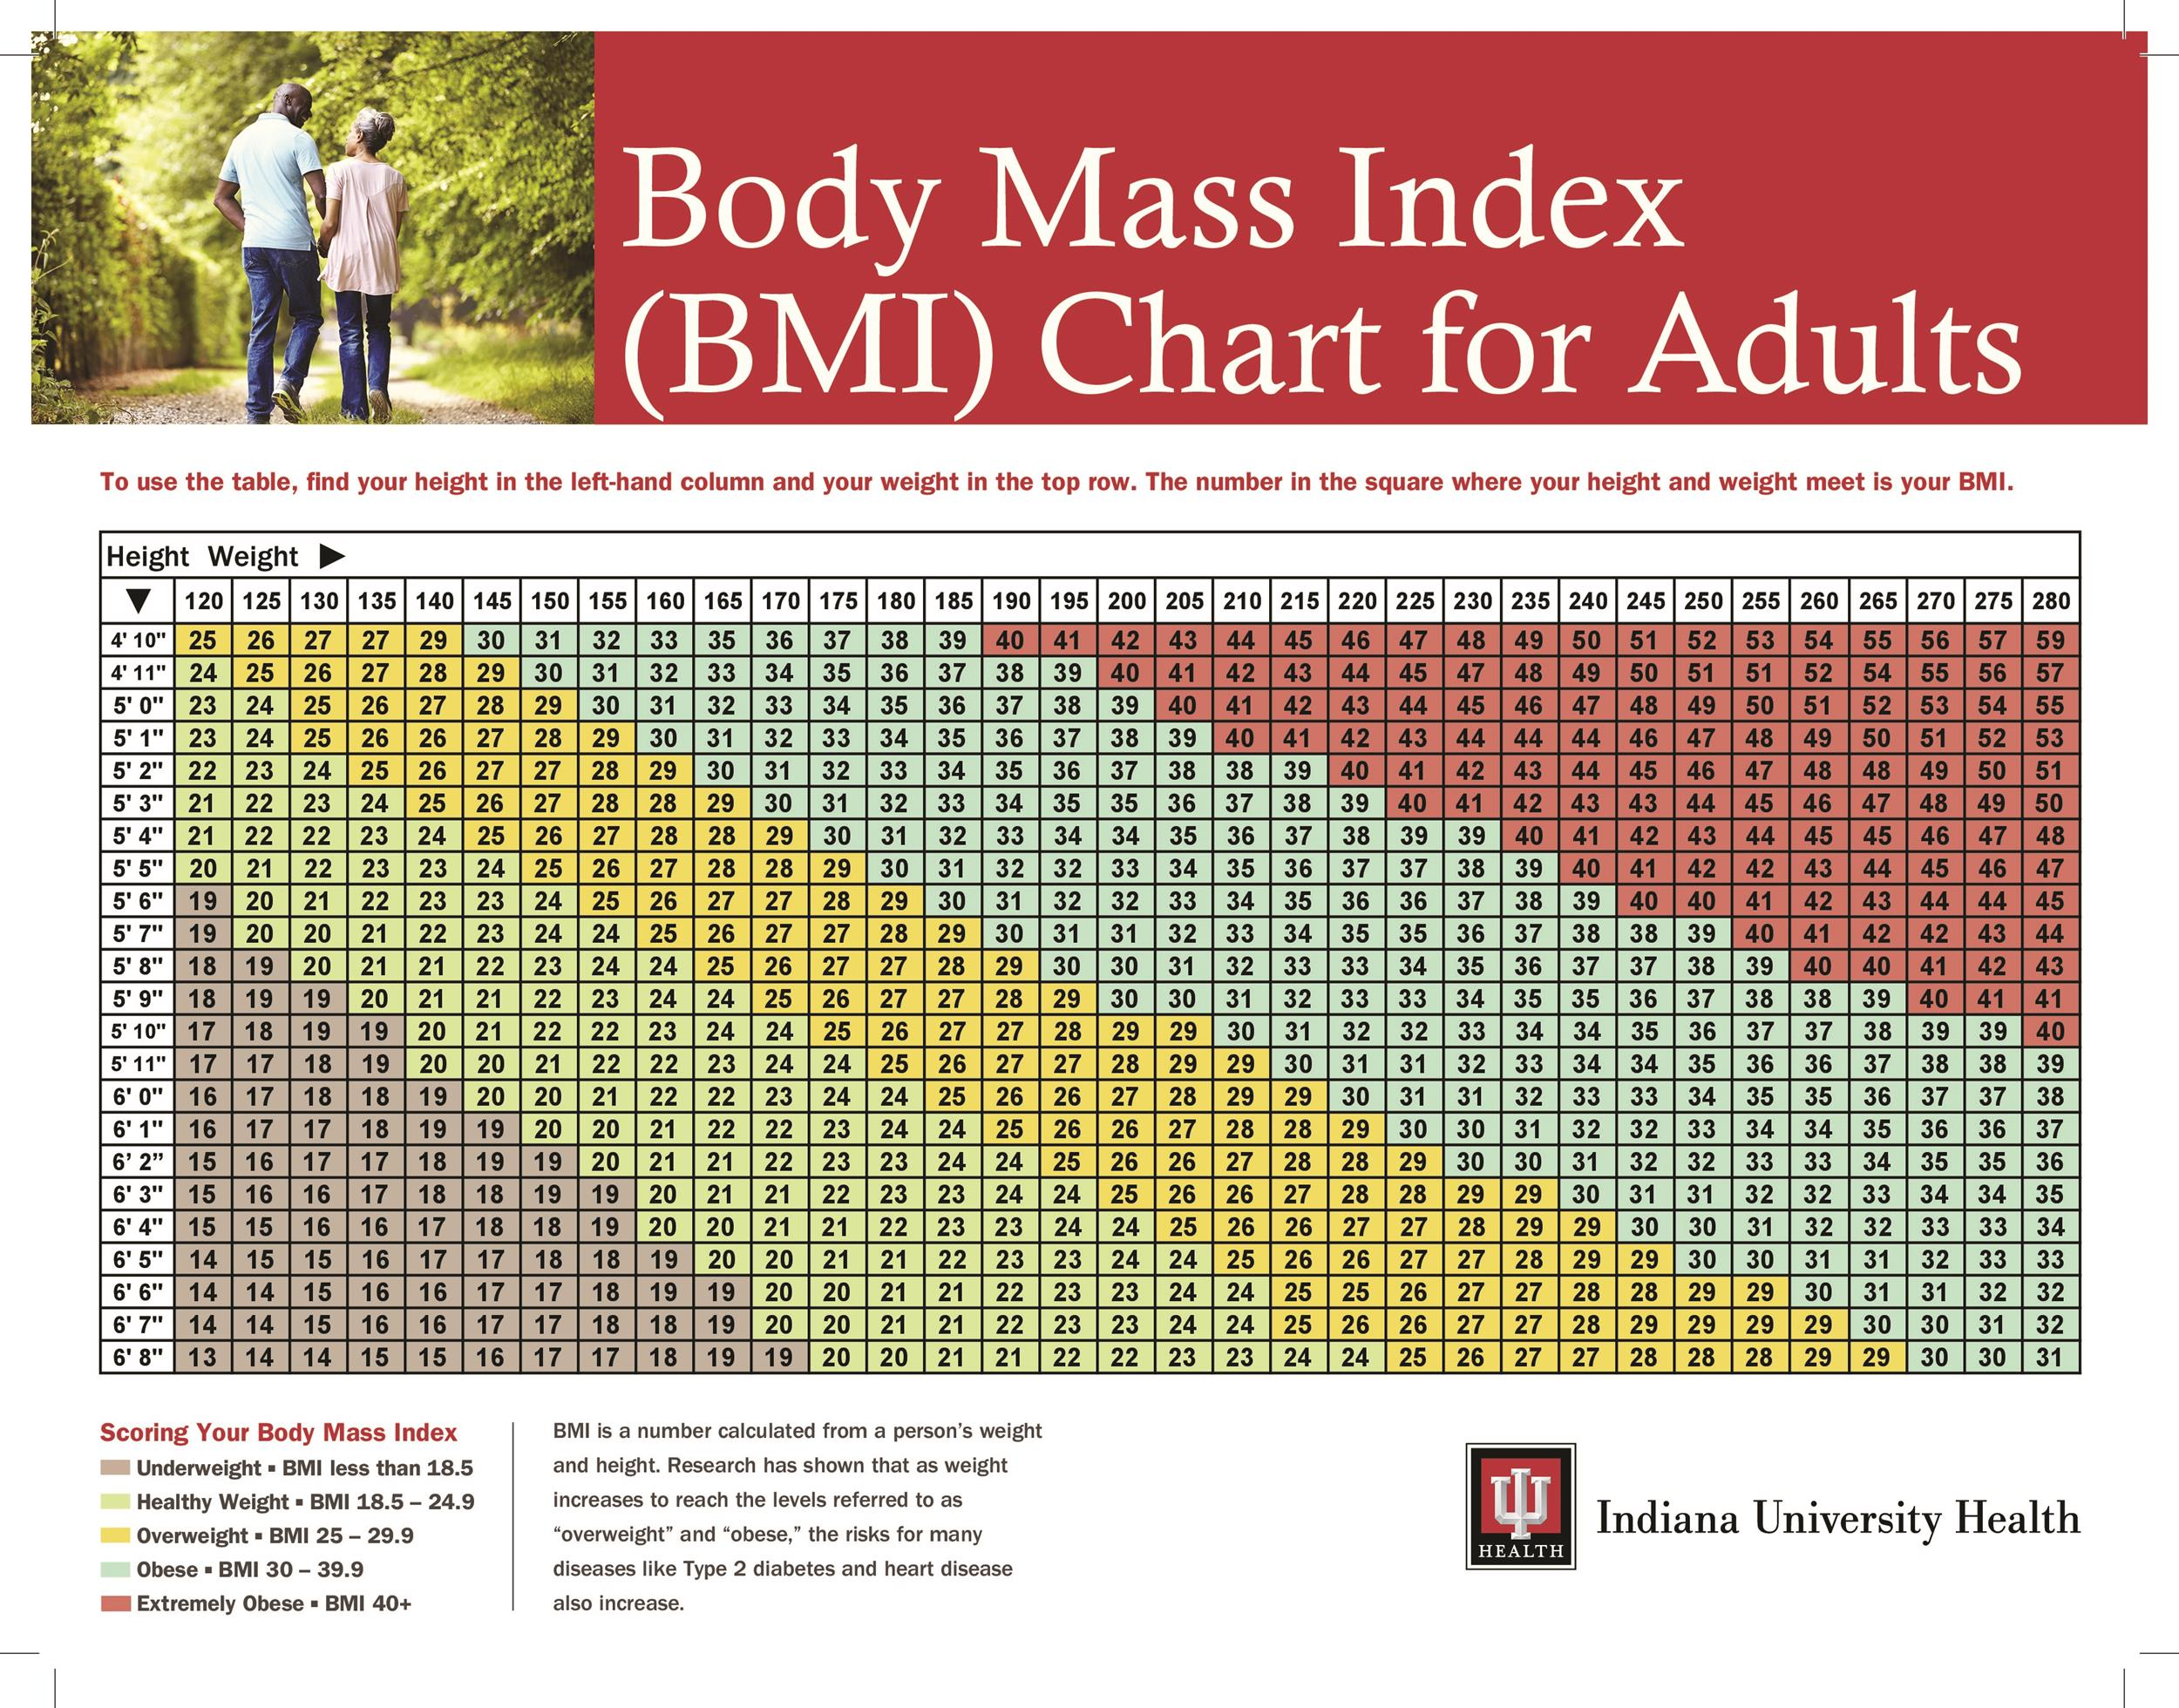 36 Free BMI Chart Templates (for Women, Men or Kids) ᐅ Template Lab